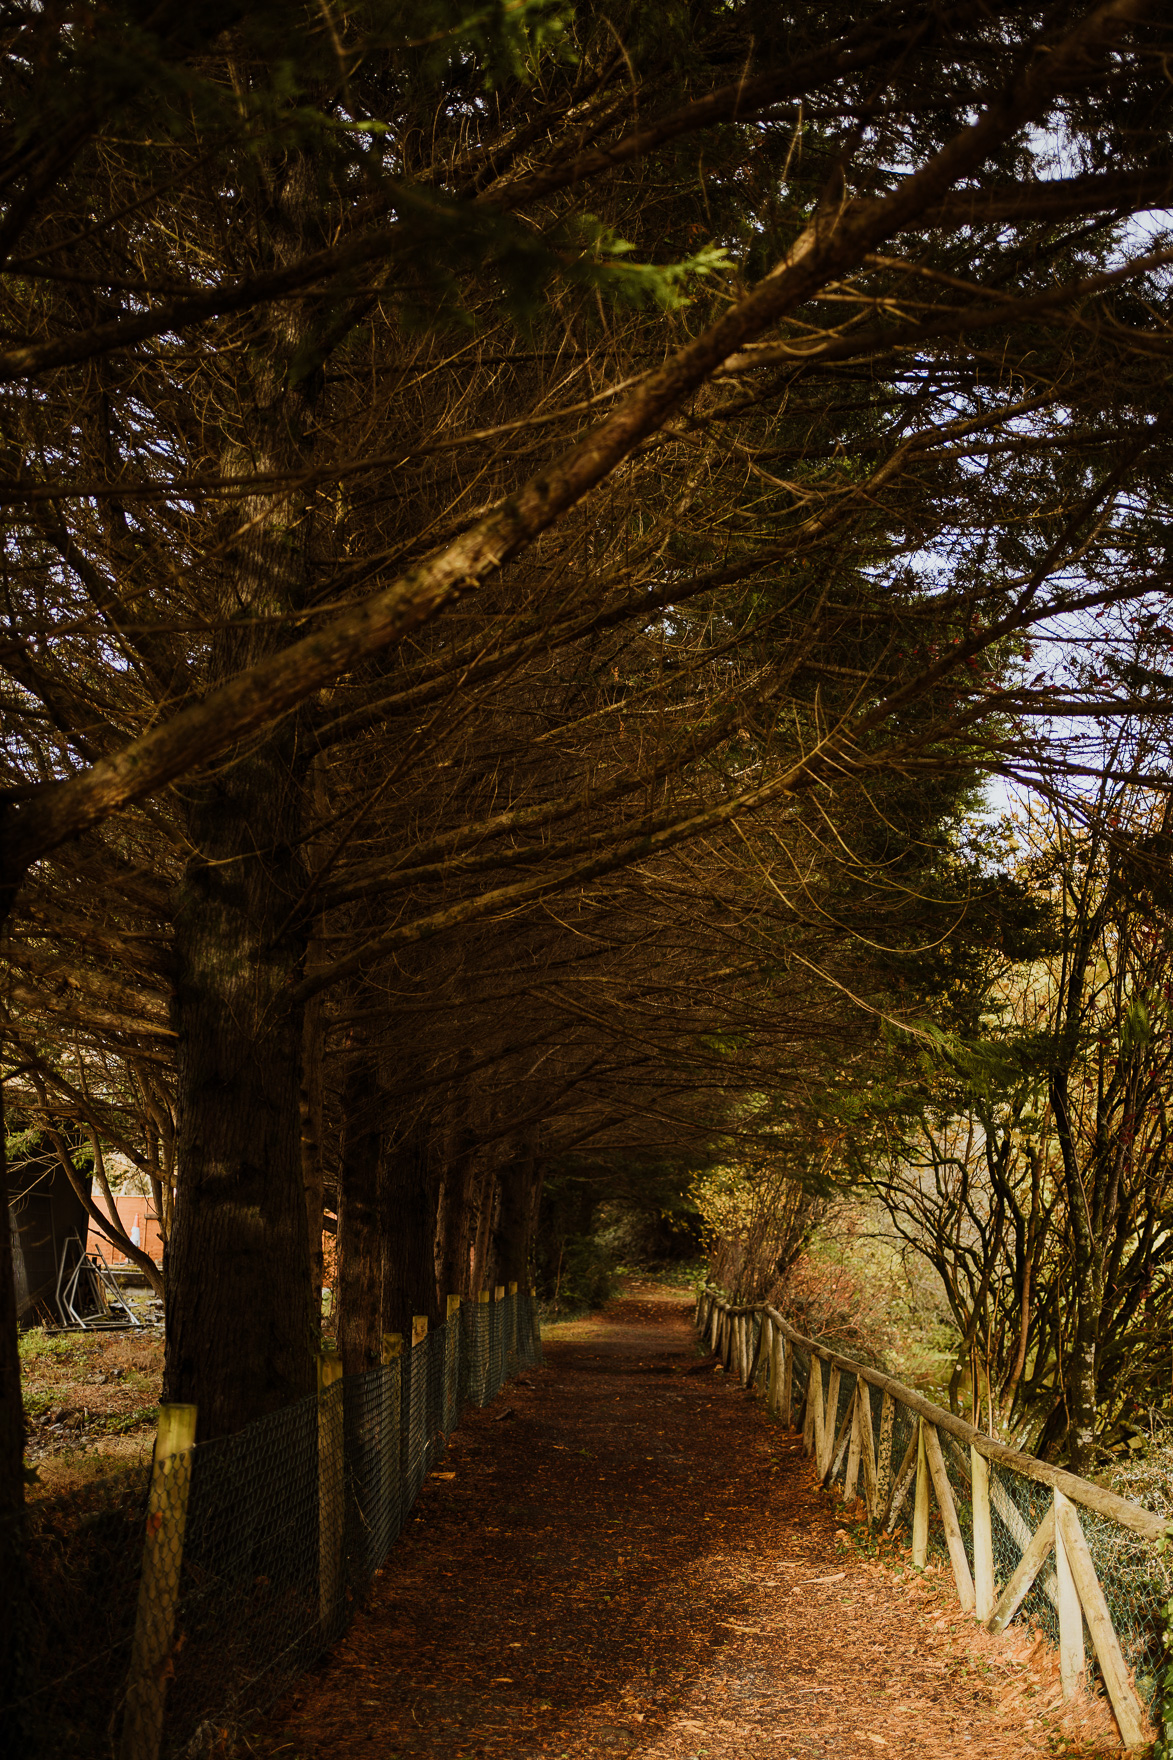 A path with trees on the side of a tree